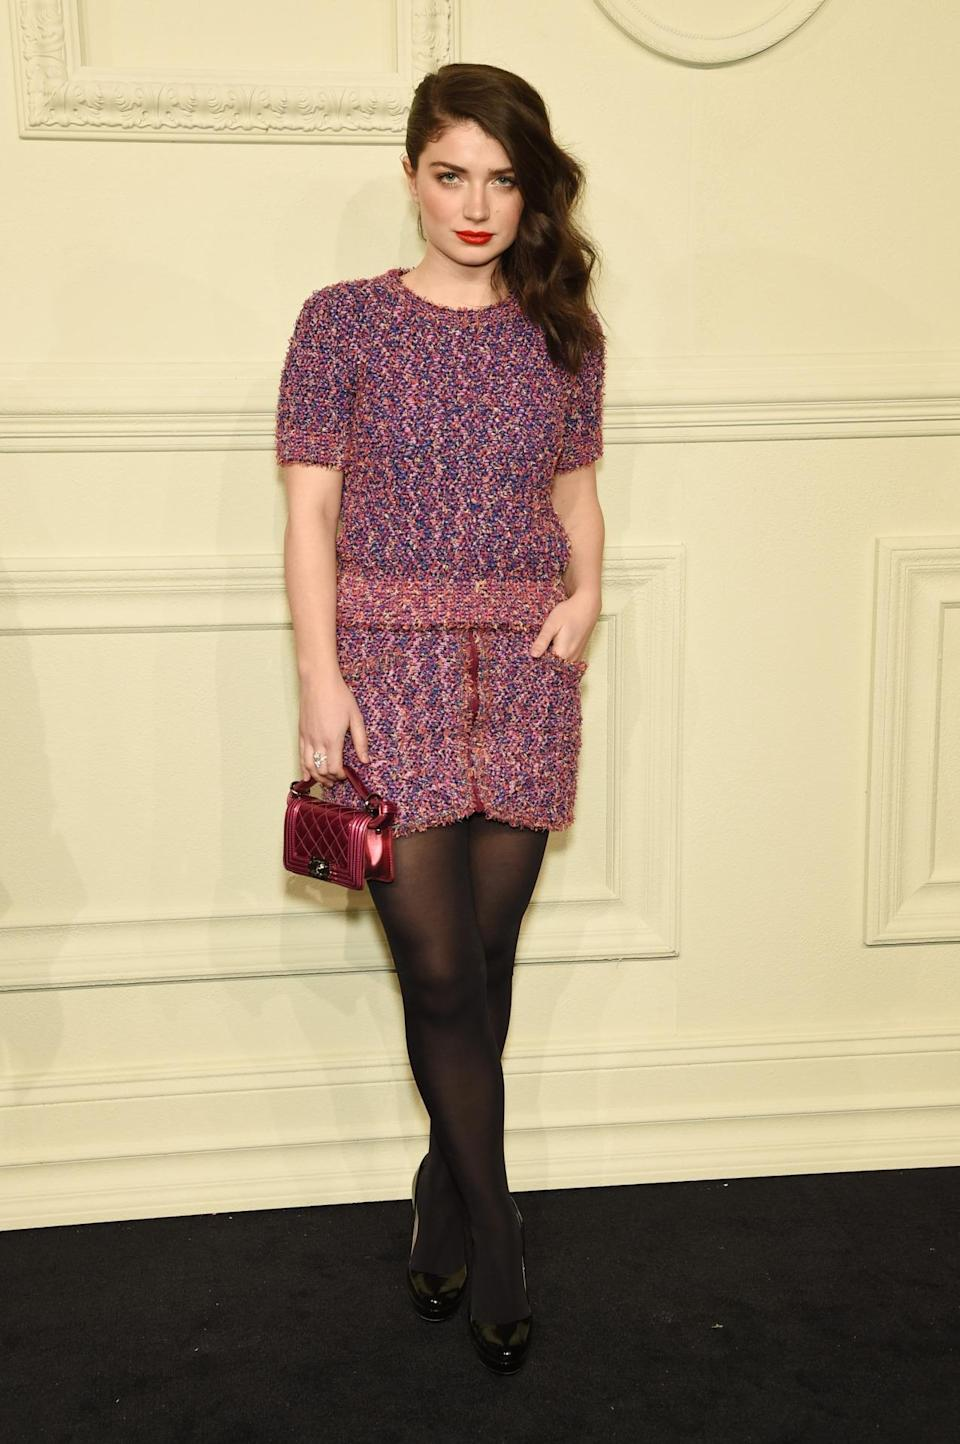 <p>Actress Eve Hewson (who also happens to be Bono's daughter) is all business in a pink tweed dress with a matching metallic bag.</p>